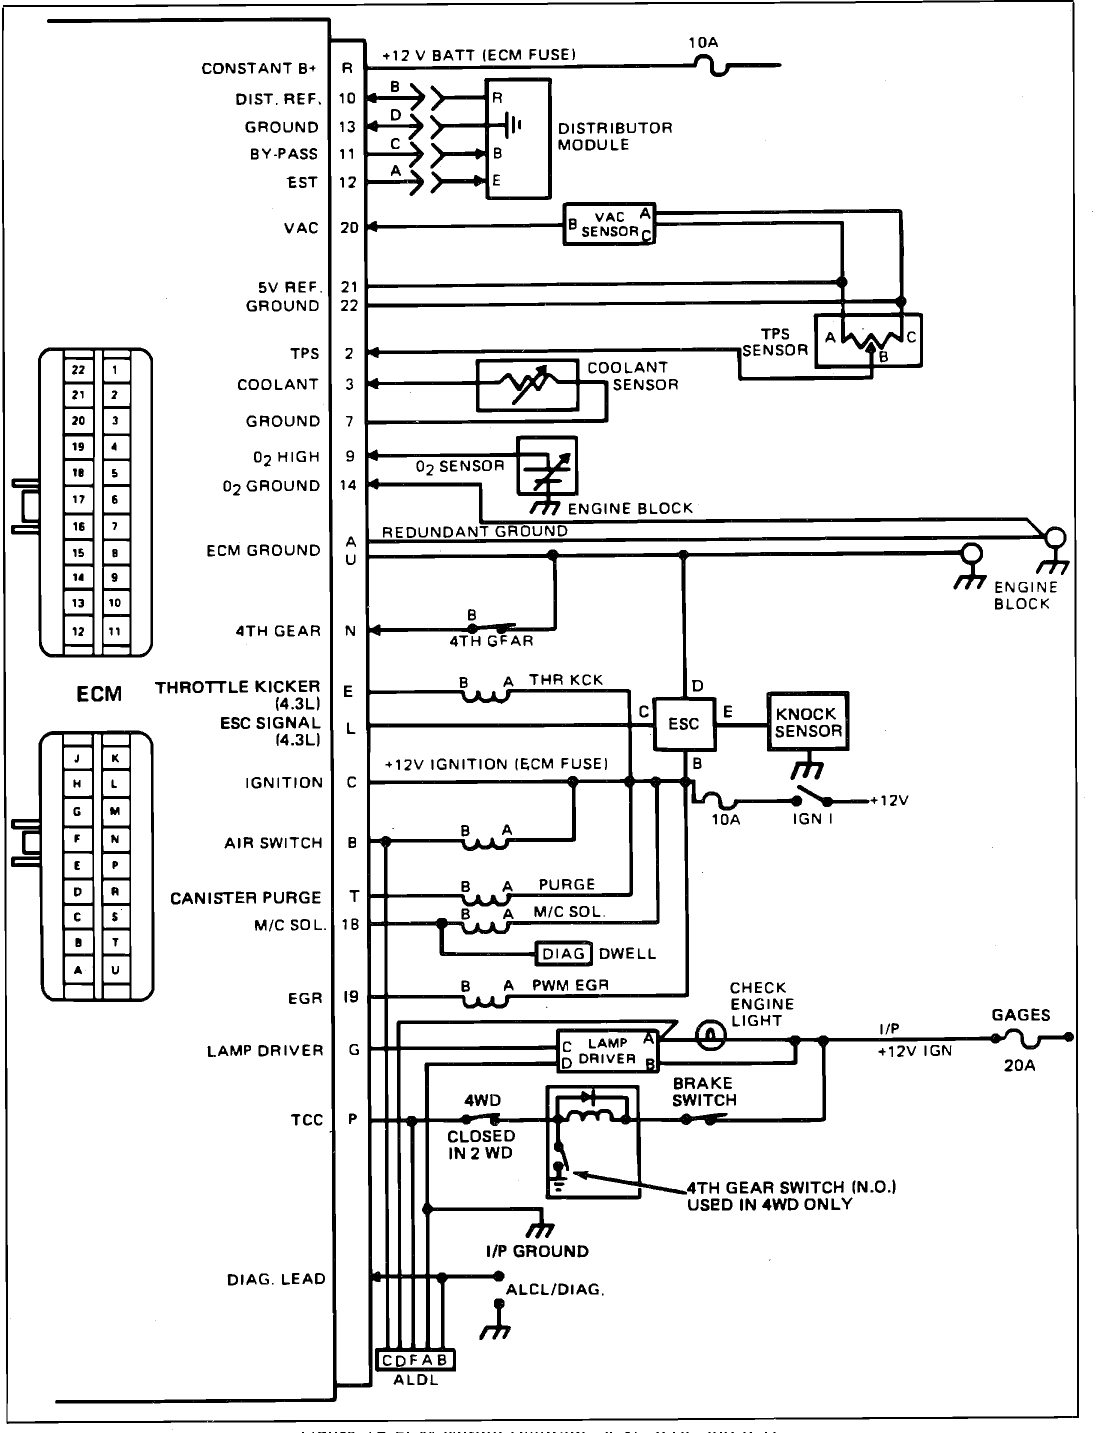 hight resolution of i need a fuse box diagram with wiring colors 1993 chevy g20 1995 chevy g20 fuse